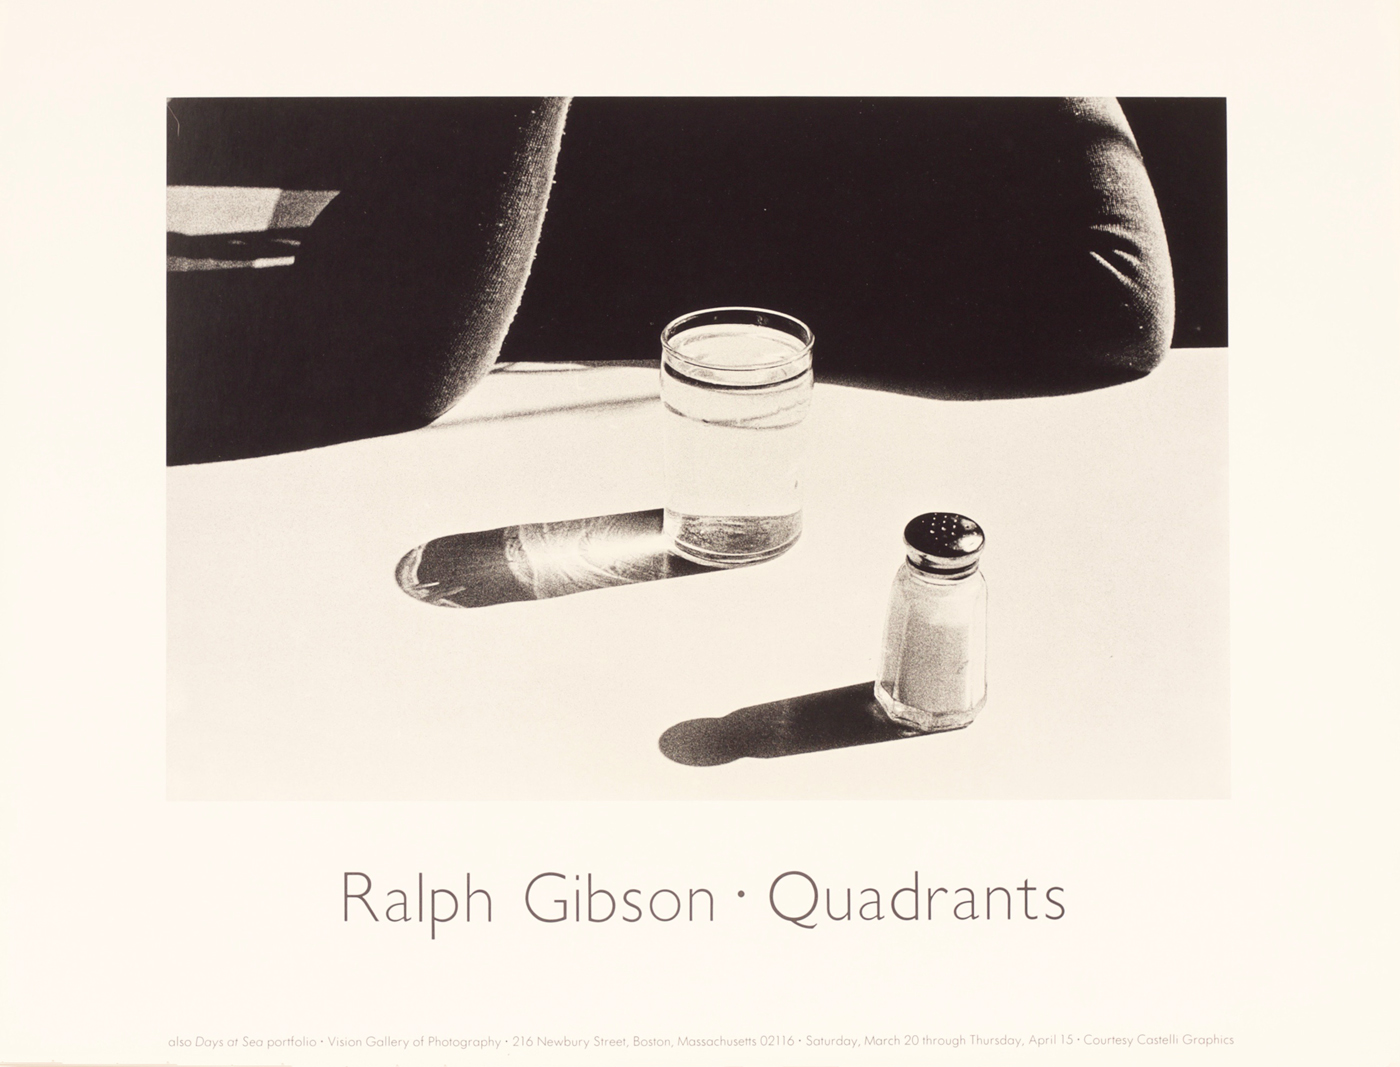 Ralph Gibson Quadrants Vision Gallery Of Photography Exhibition Poster